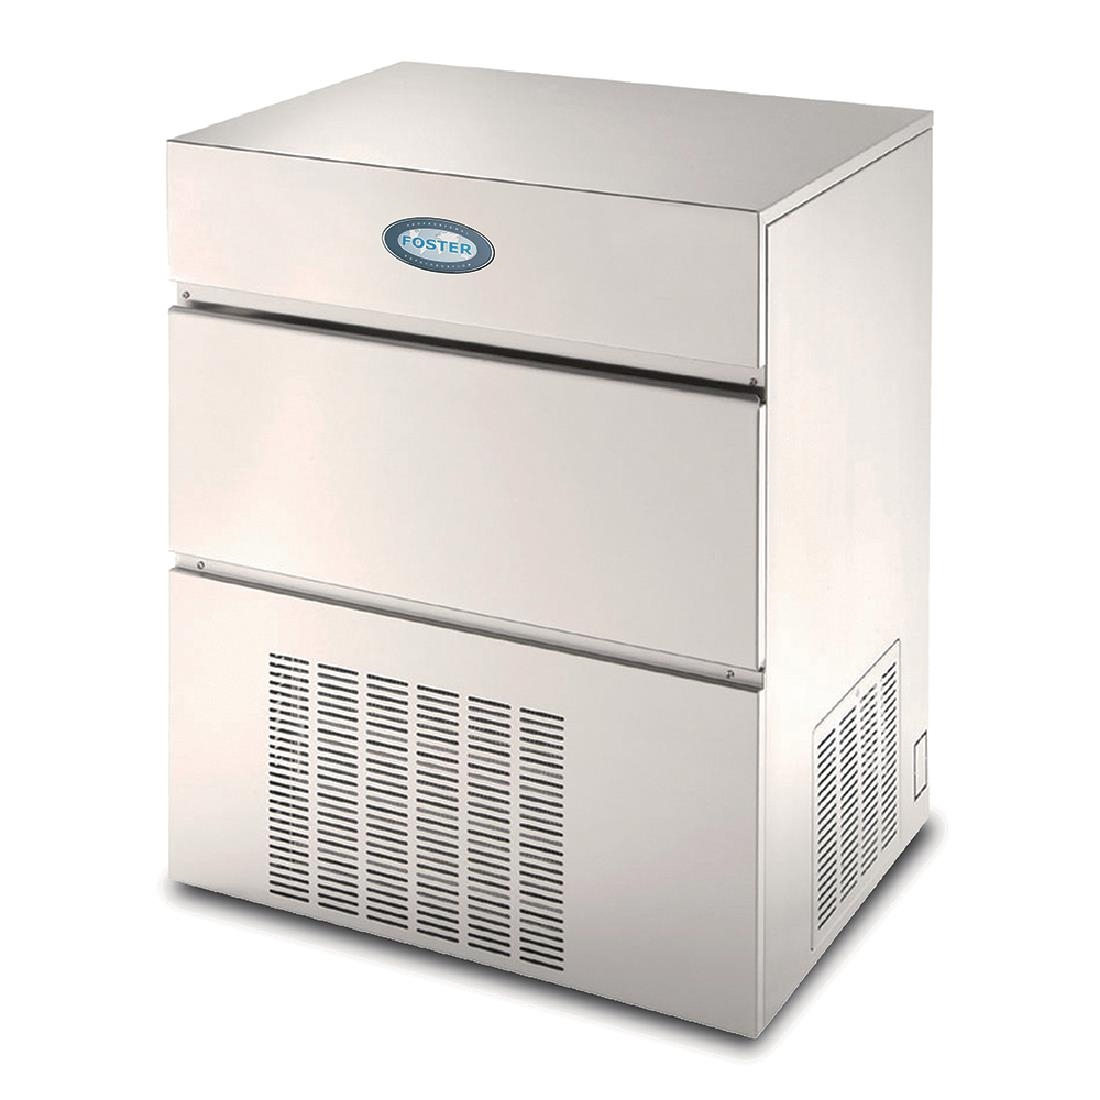 Image of Foster Air-Cooled Integral Ice Maker FS50 27/107